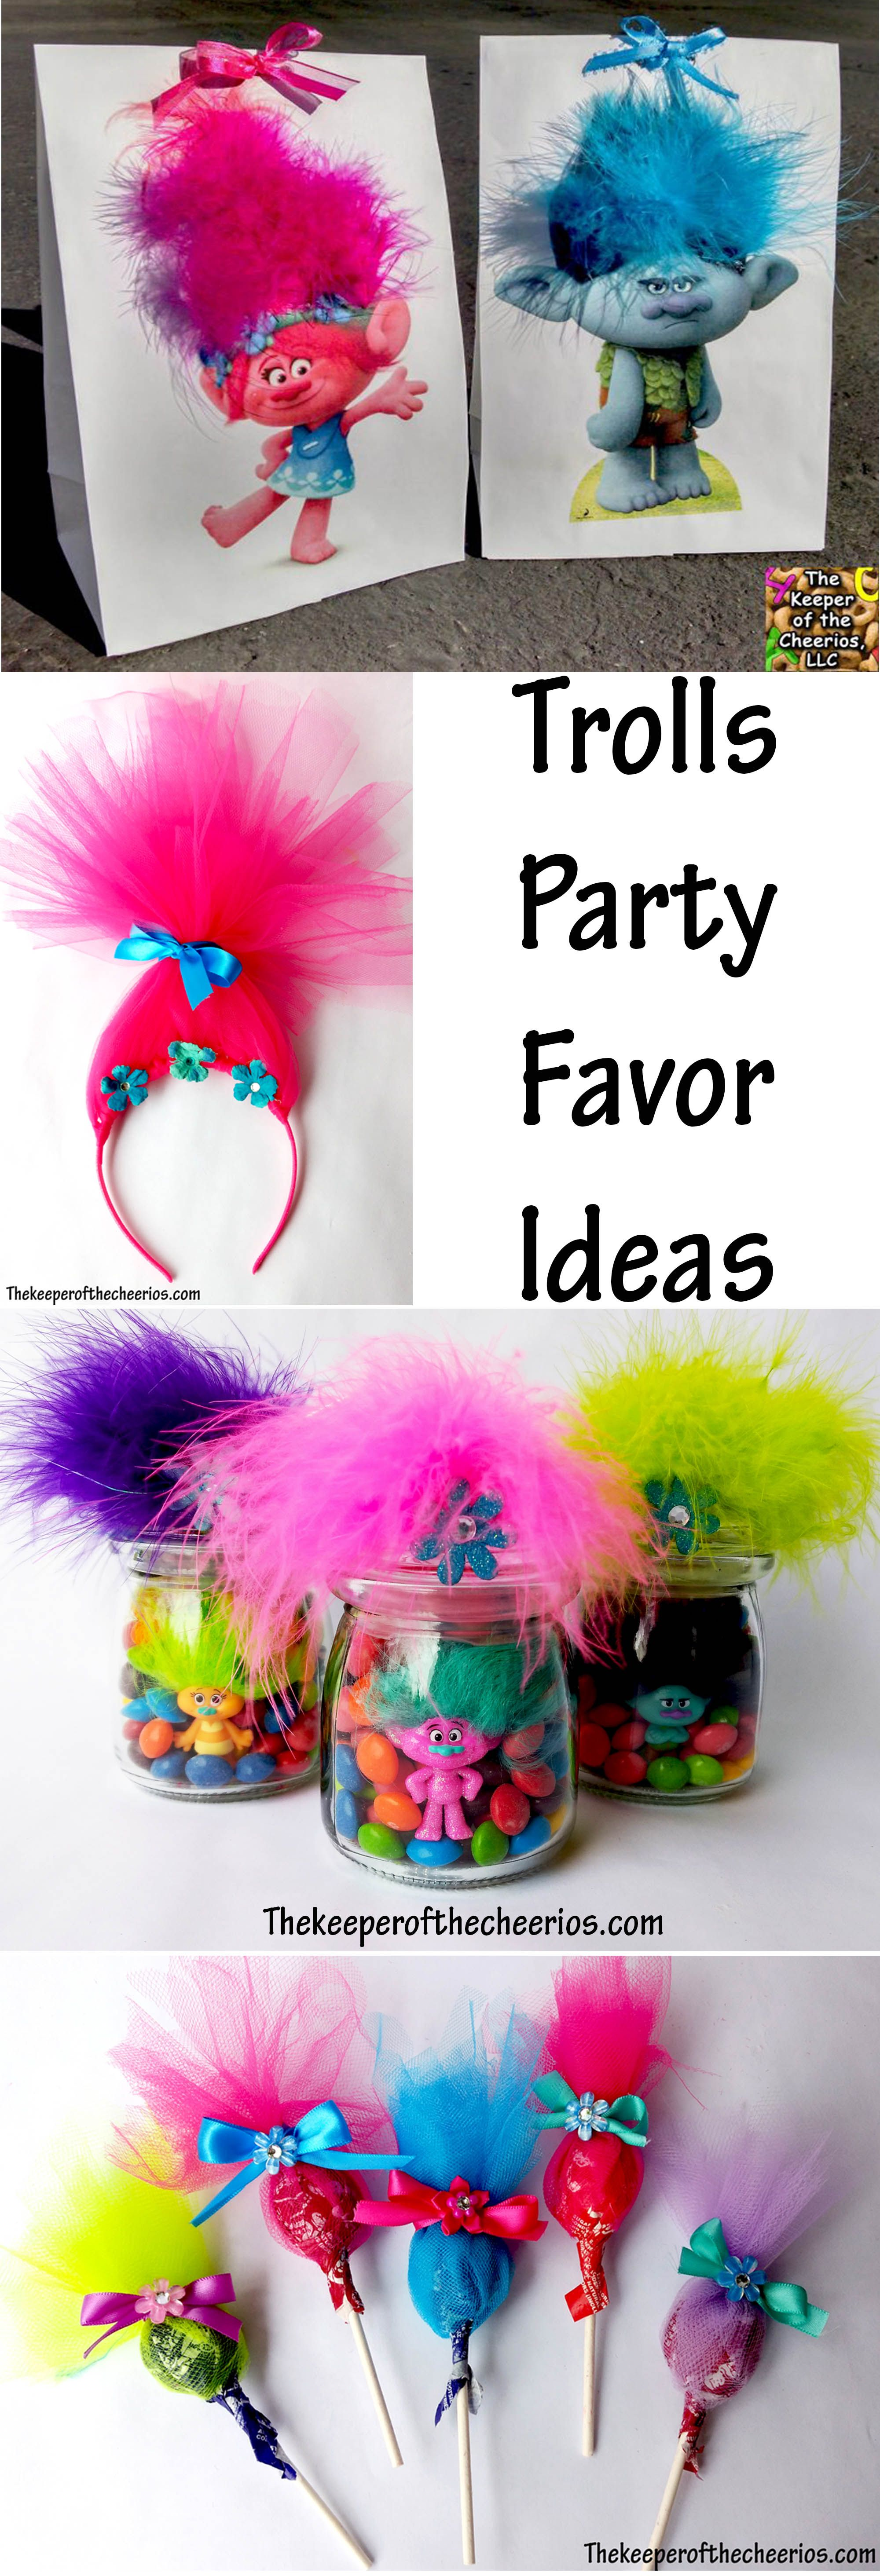 trolls party favor ideas the keeper of the cheerios crafts pinterest geburtstag party und. Black Bedroom Furniture Sets. Home Design Ideas